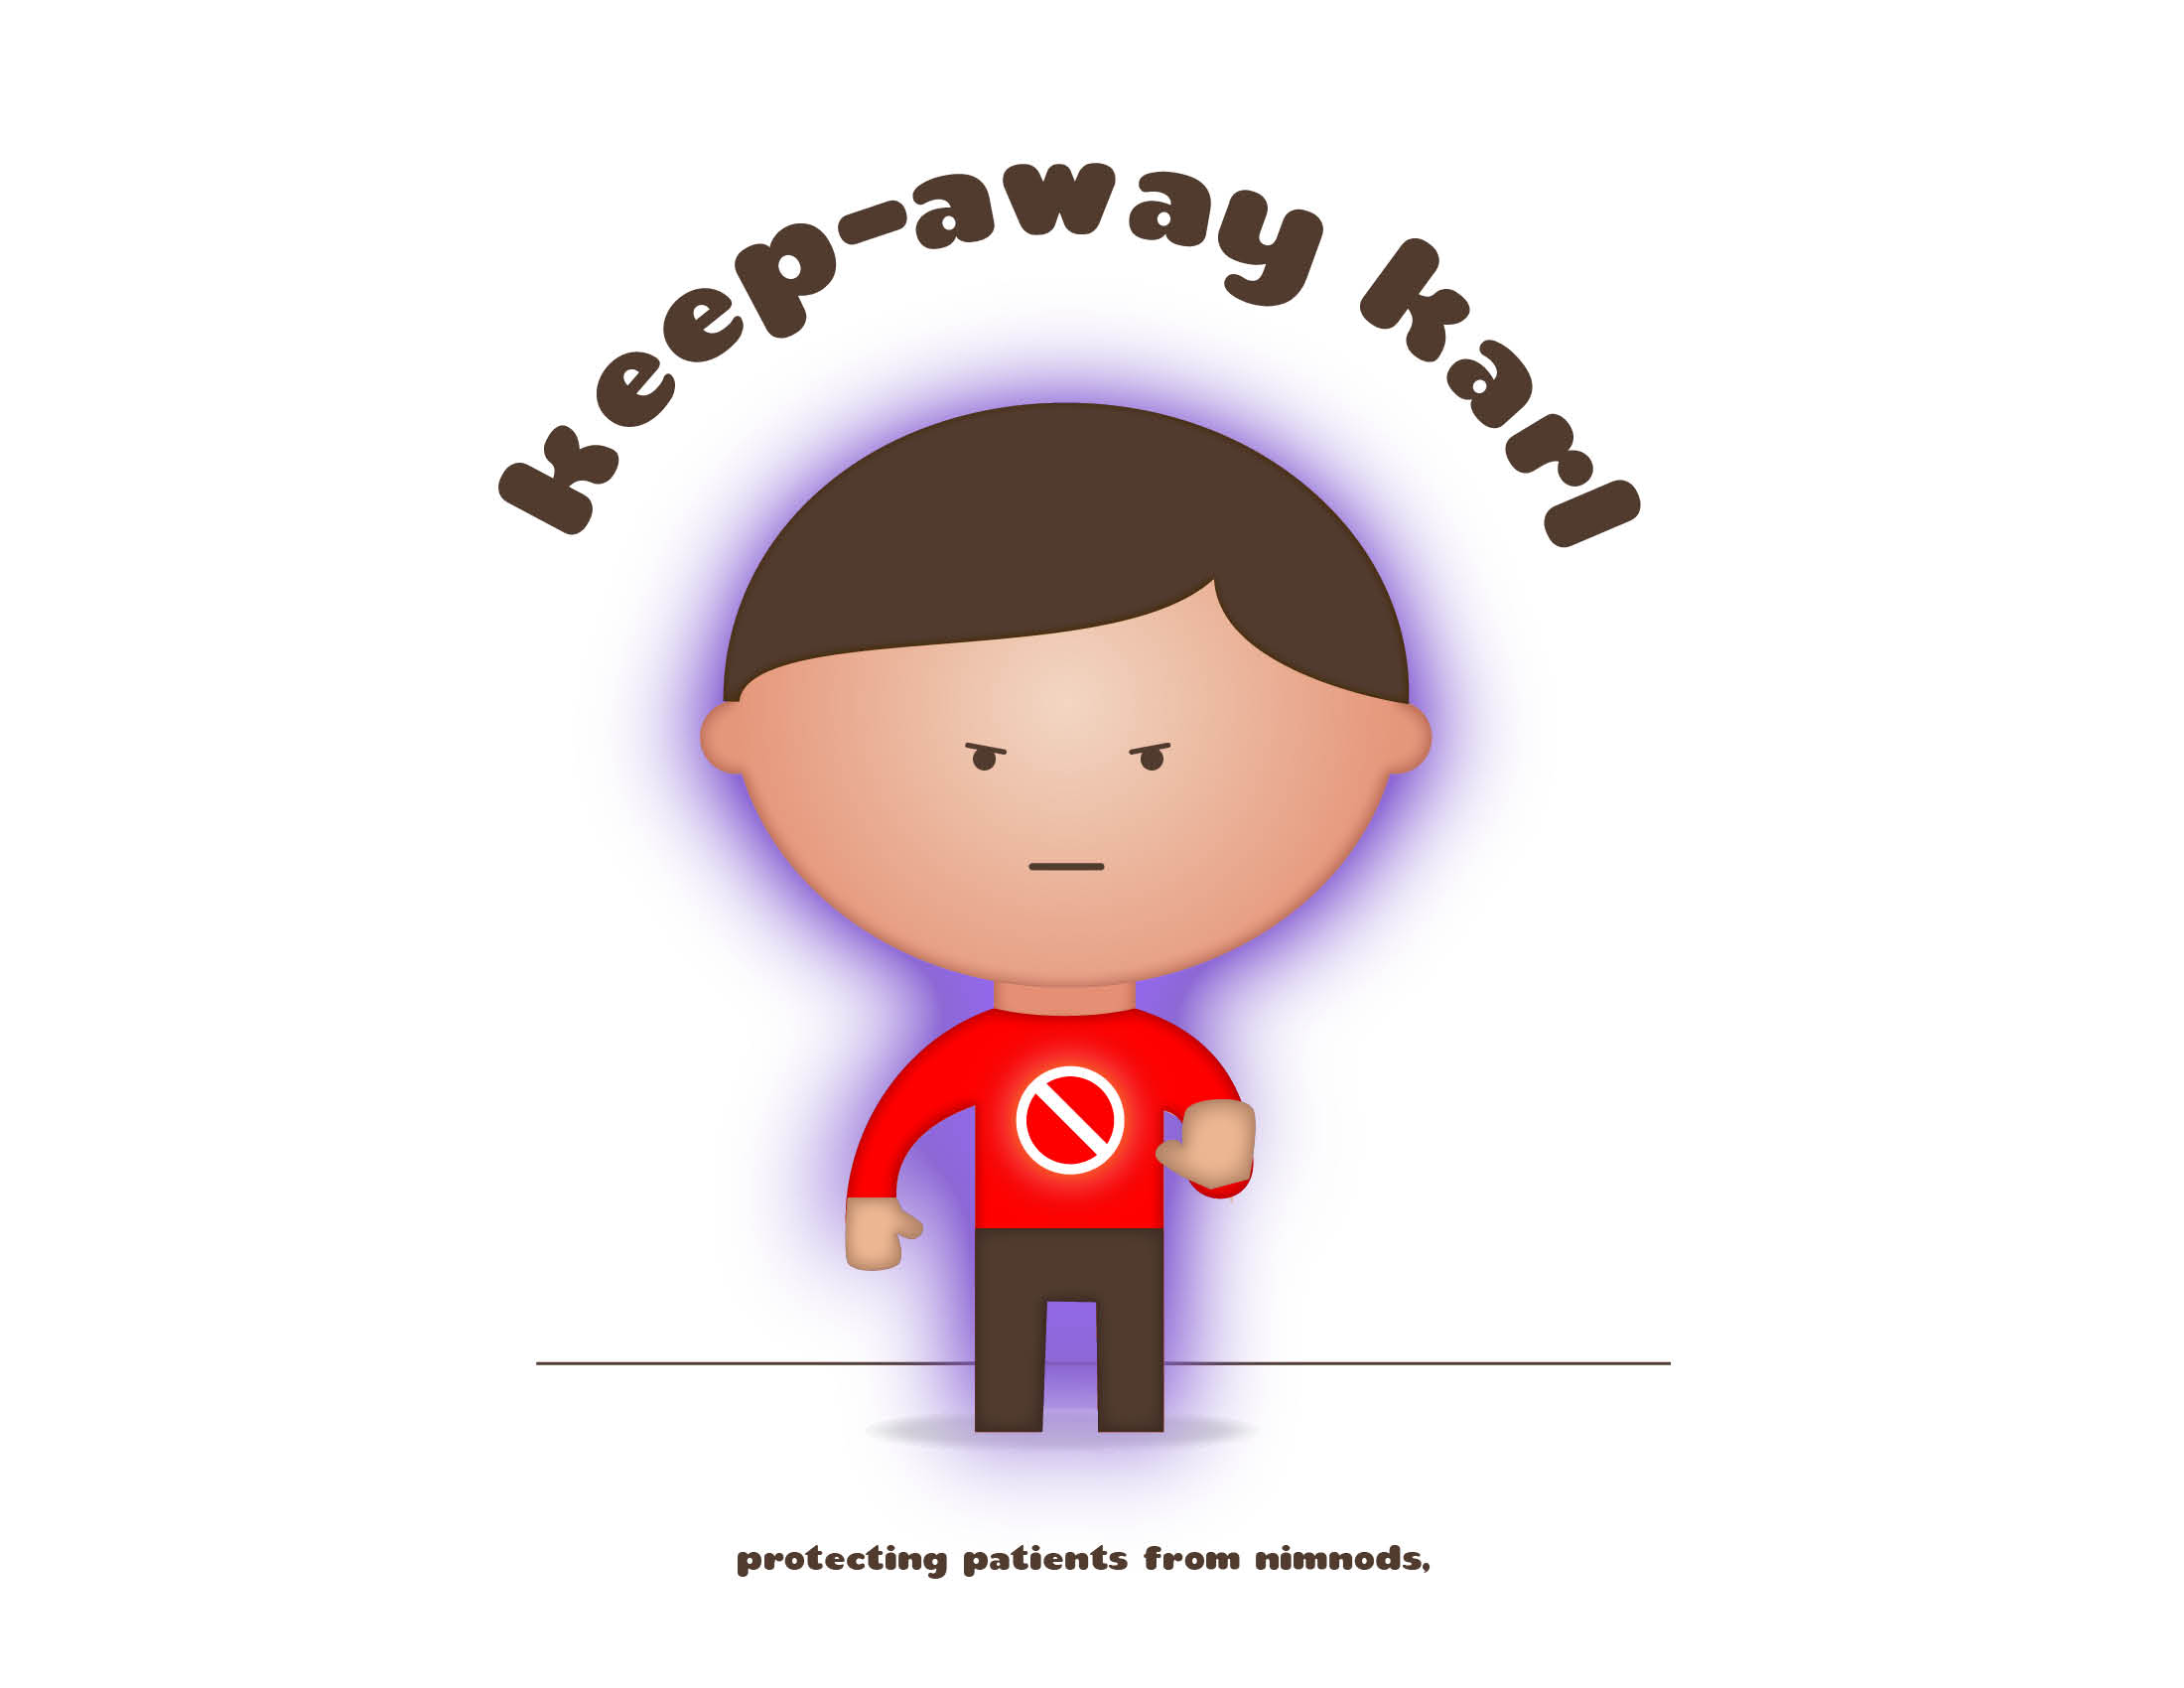 Keep Away Karl cancer illustration